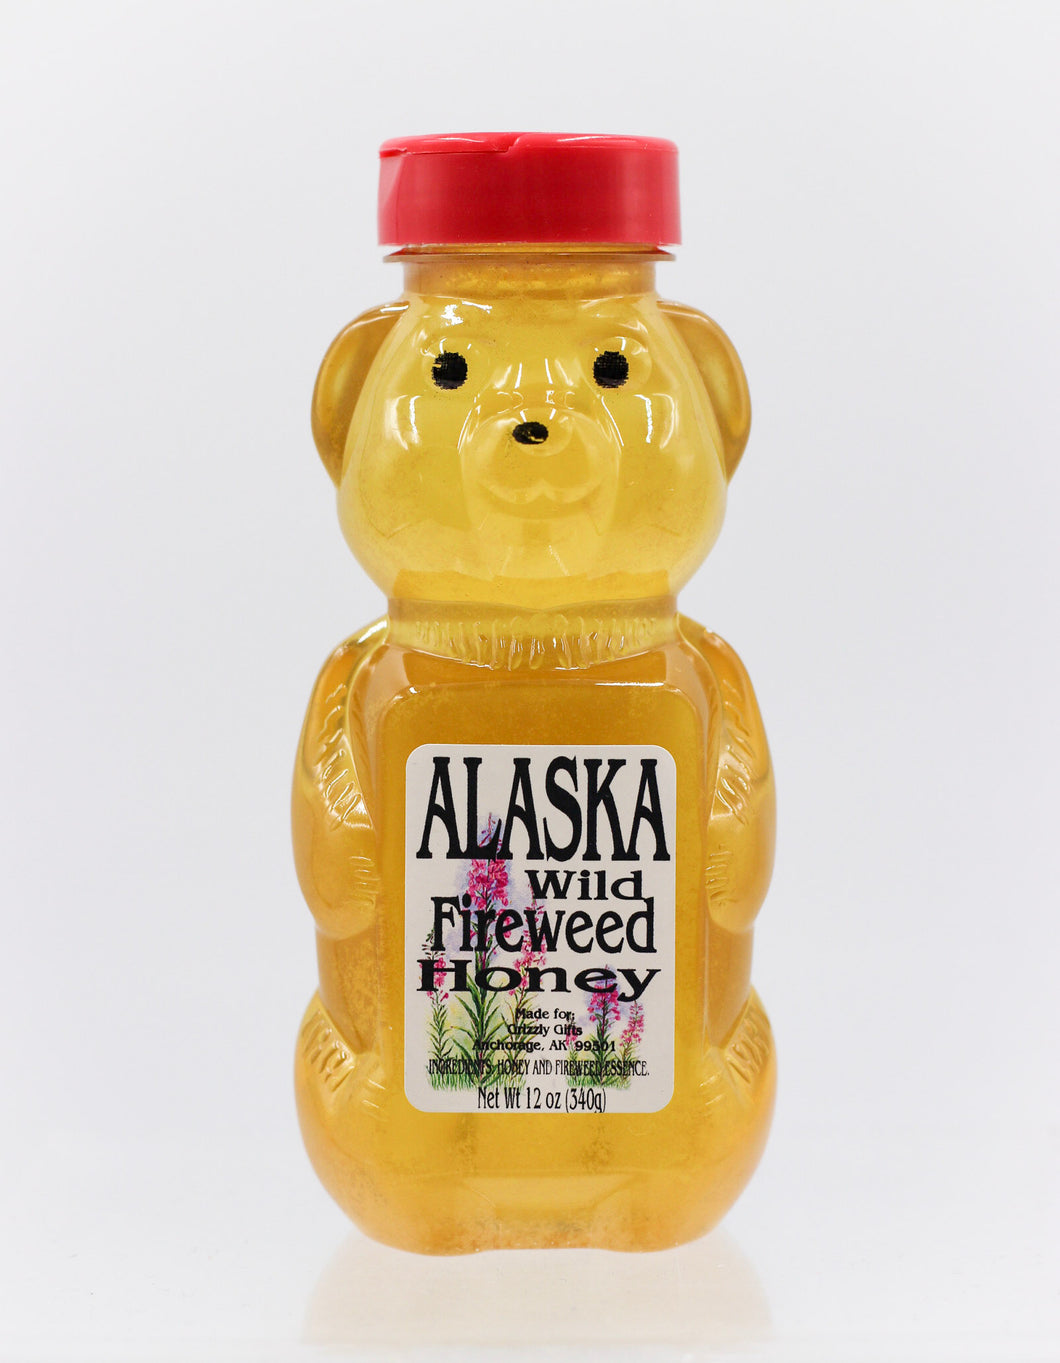 ALASKA WILD FIREWEED HONEY 19 OZ BEAR